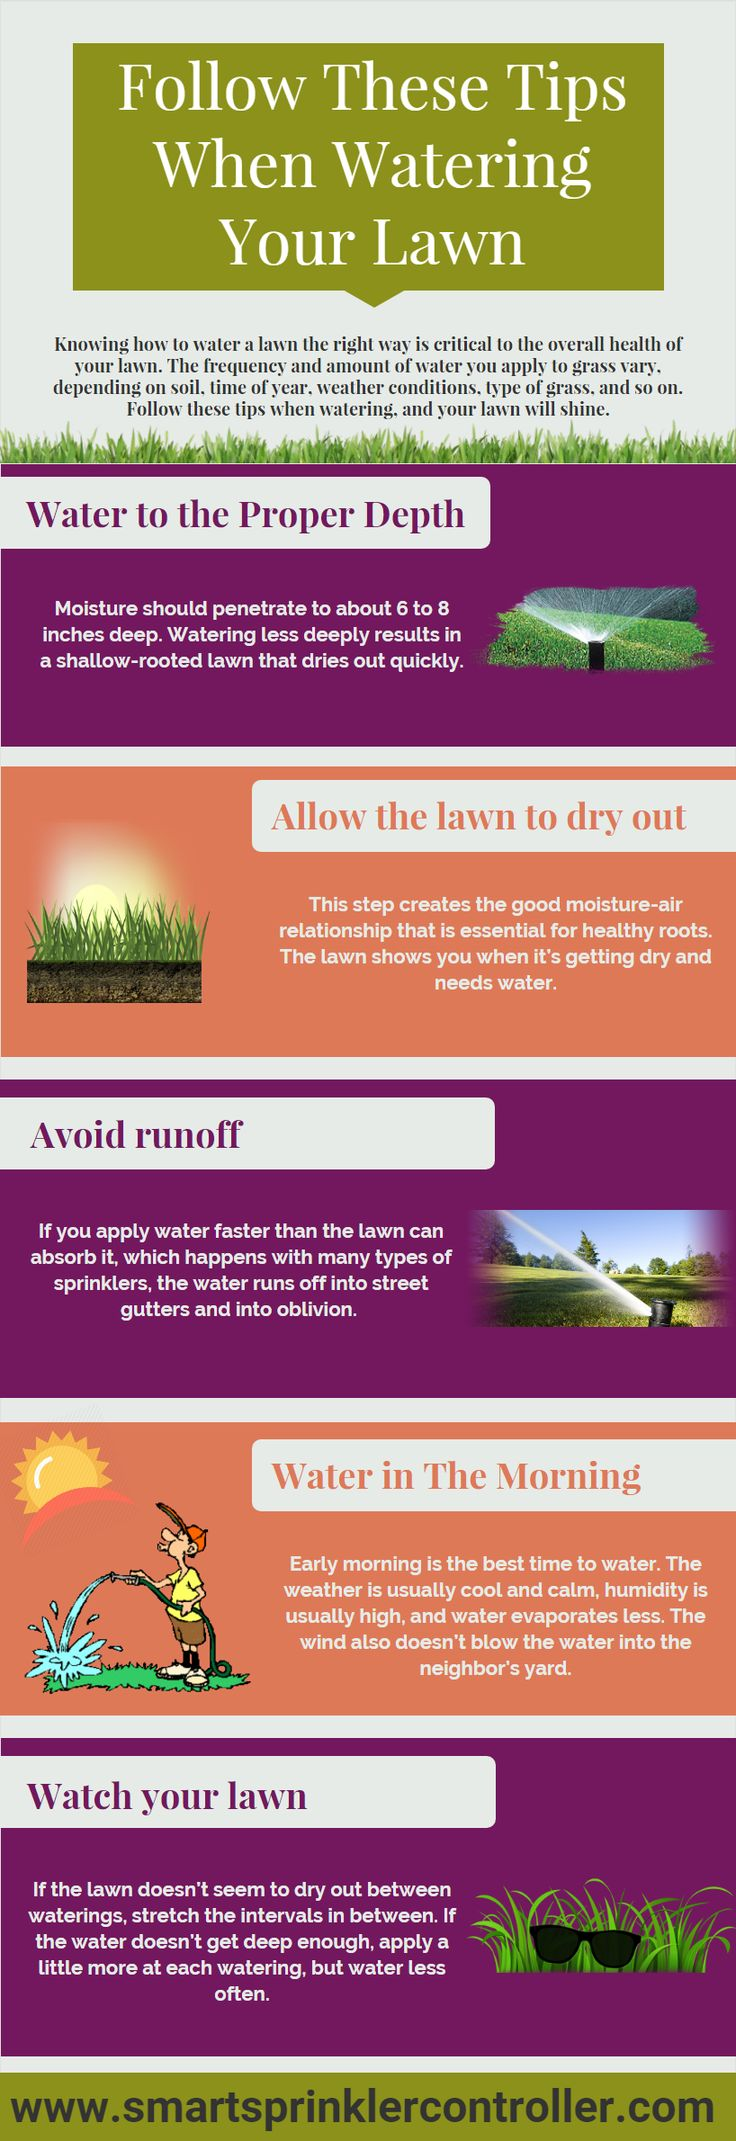 """People irrigate their lawn but they don't have enough knowledge about how to watering their lawn, and they don't have ideas about the #sprinkler. This infographic is showing you """"follow these tips when watering your lawn."""" Must watch. https://www.smartsprinklercontroller.com/rainbird-5000-adjustments/"""